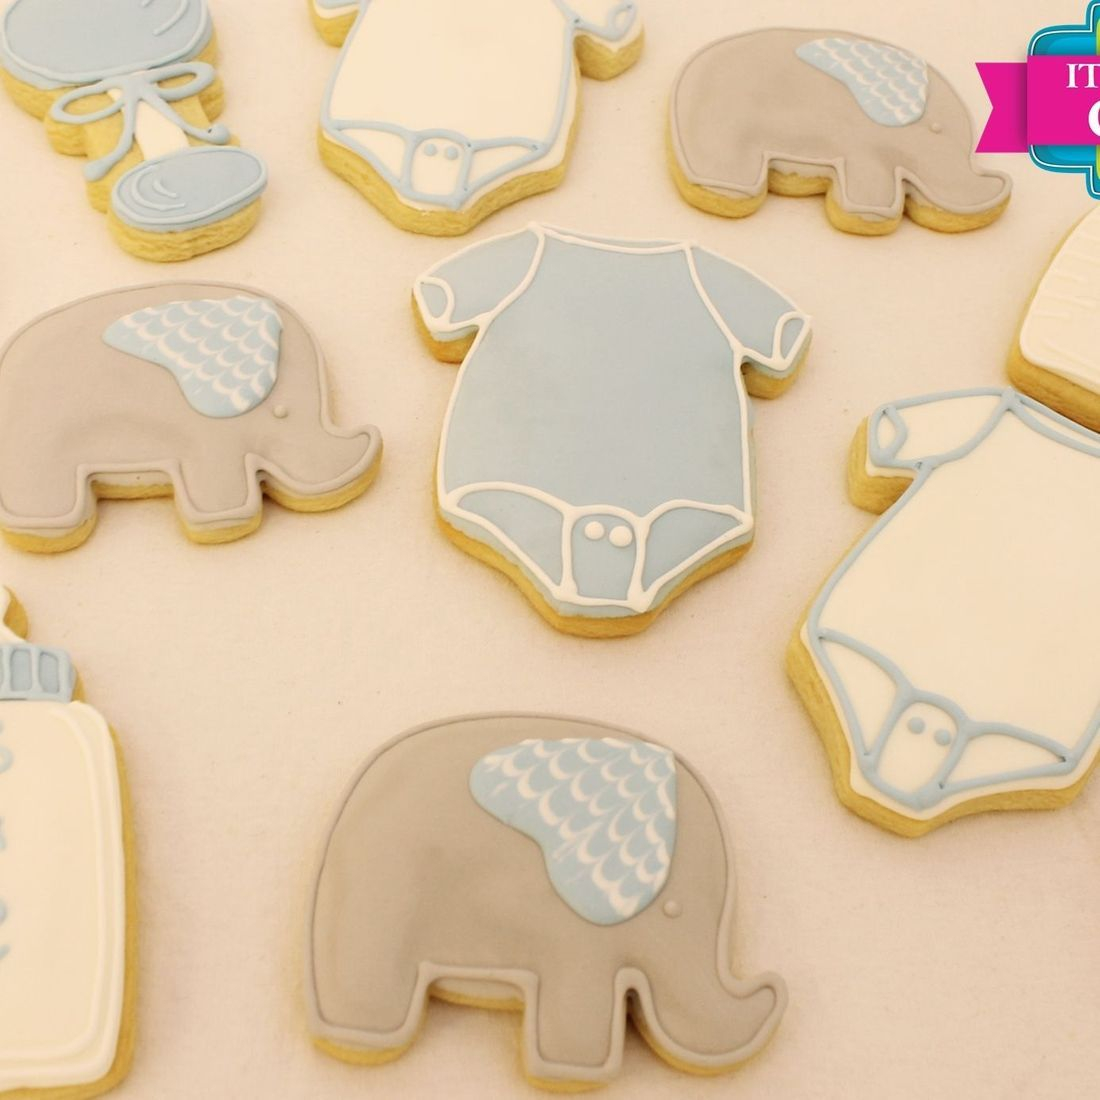 Grey Blue Elephant Shower Bottle cookies Milwaukee